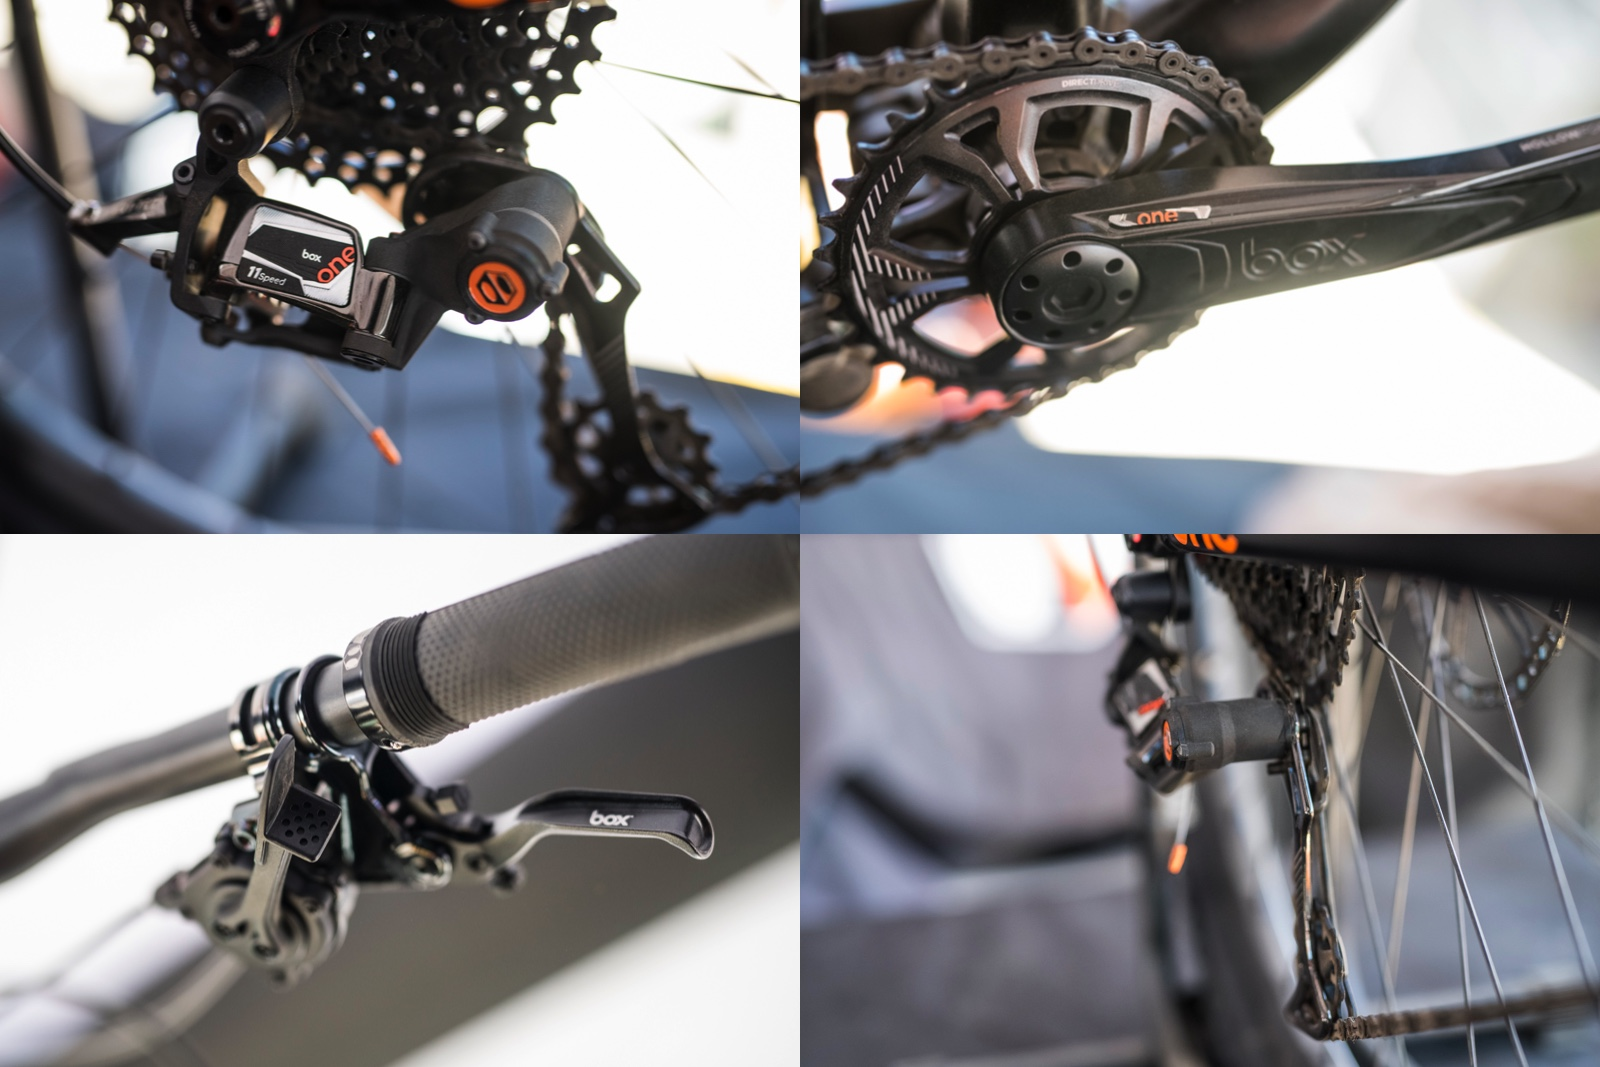 Some cool feature on this drivetrain. The derailleur moves inboard and away from contact with rocks and trailside obstacles. Also, the thumb shifter has a split paddle, both of which you push for upshifts and downshifts.